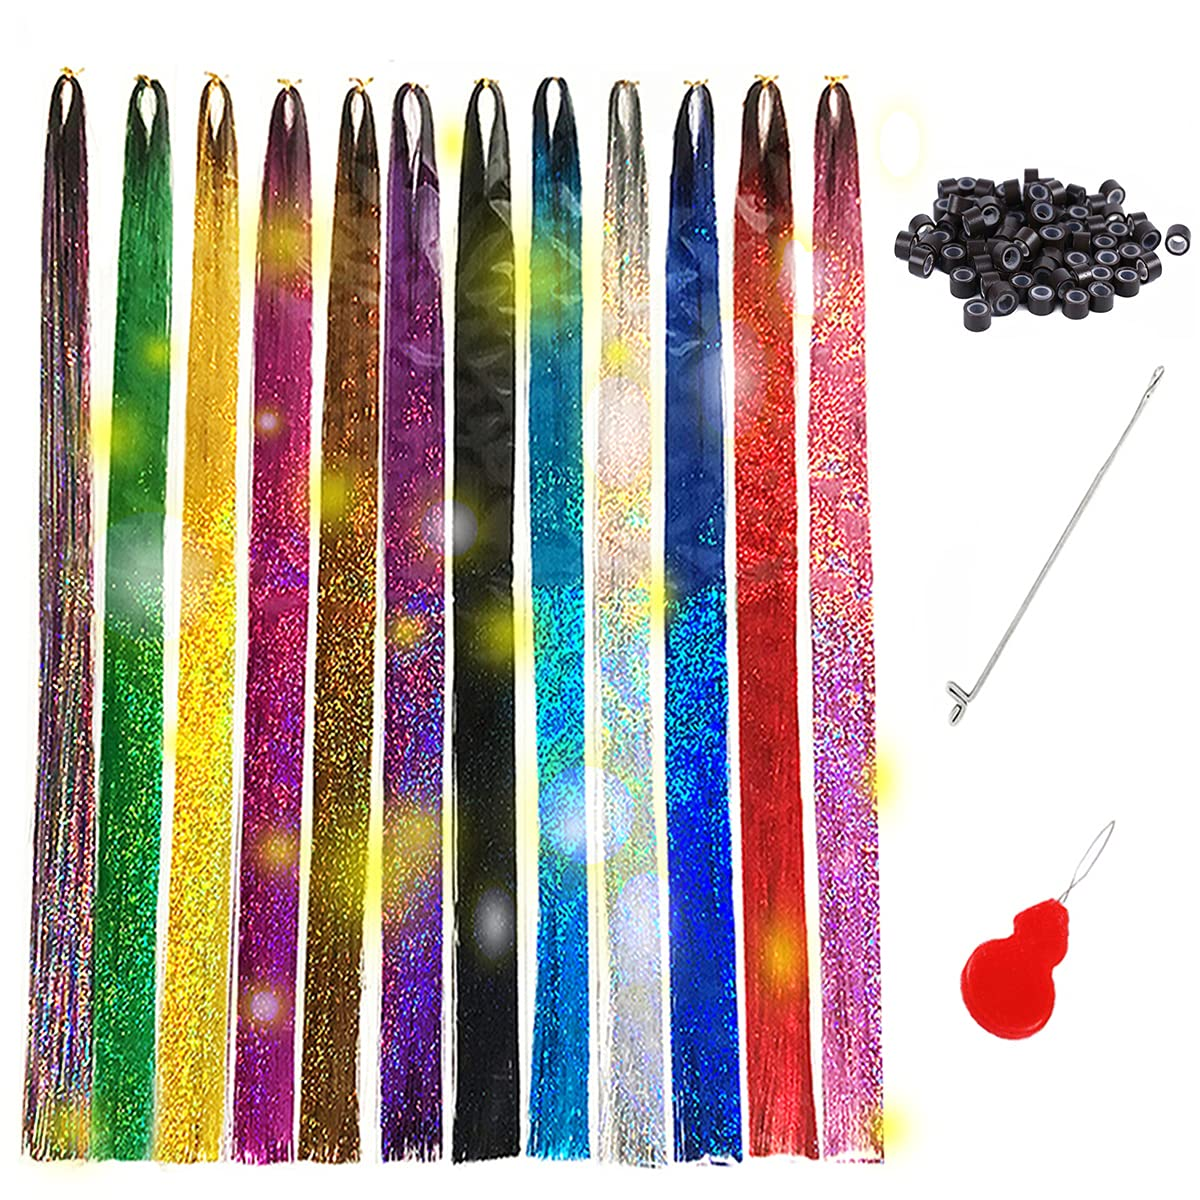 Tototoo Hair Tinsel 3000 Strands With Colors Inch 44 Tools mart 12 Fa New products, world's highest quality popular!